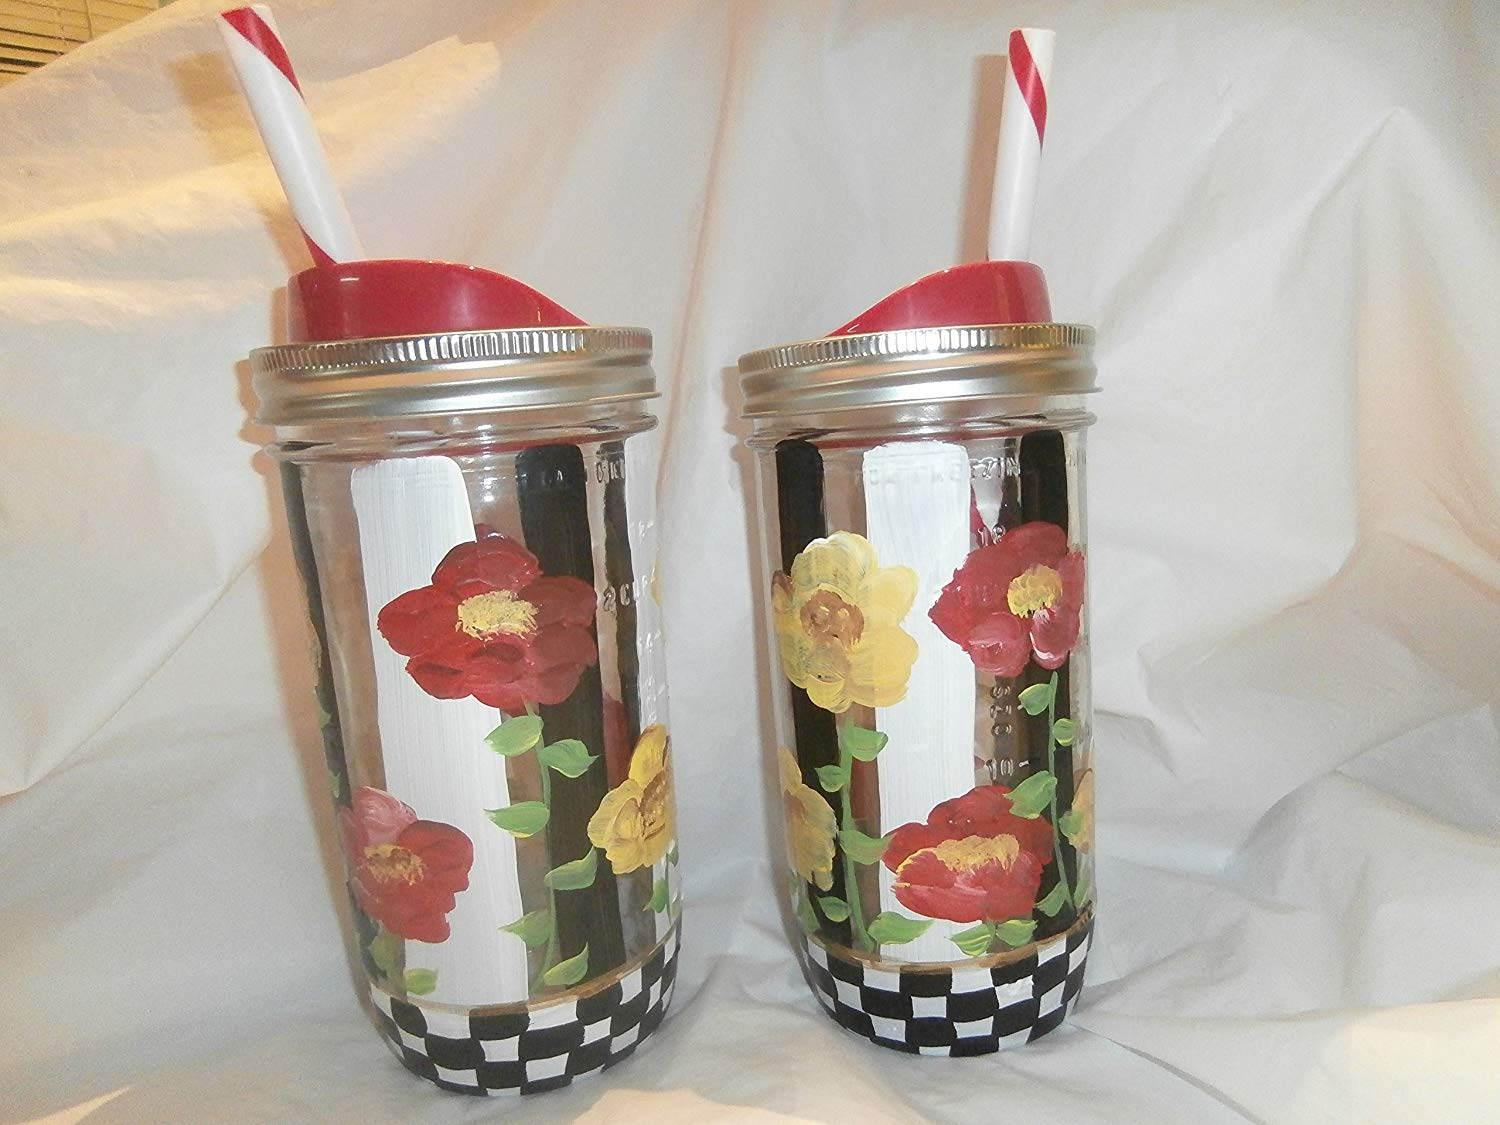 Hand painted Red and Yellow poppies on stripes and checks. 24 ounce mason quart jars with coordinated lid and straws. set of 2.